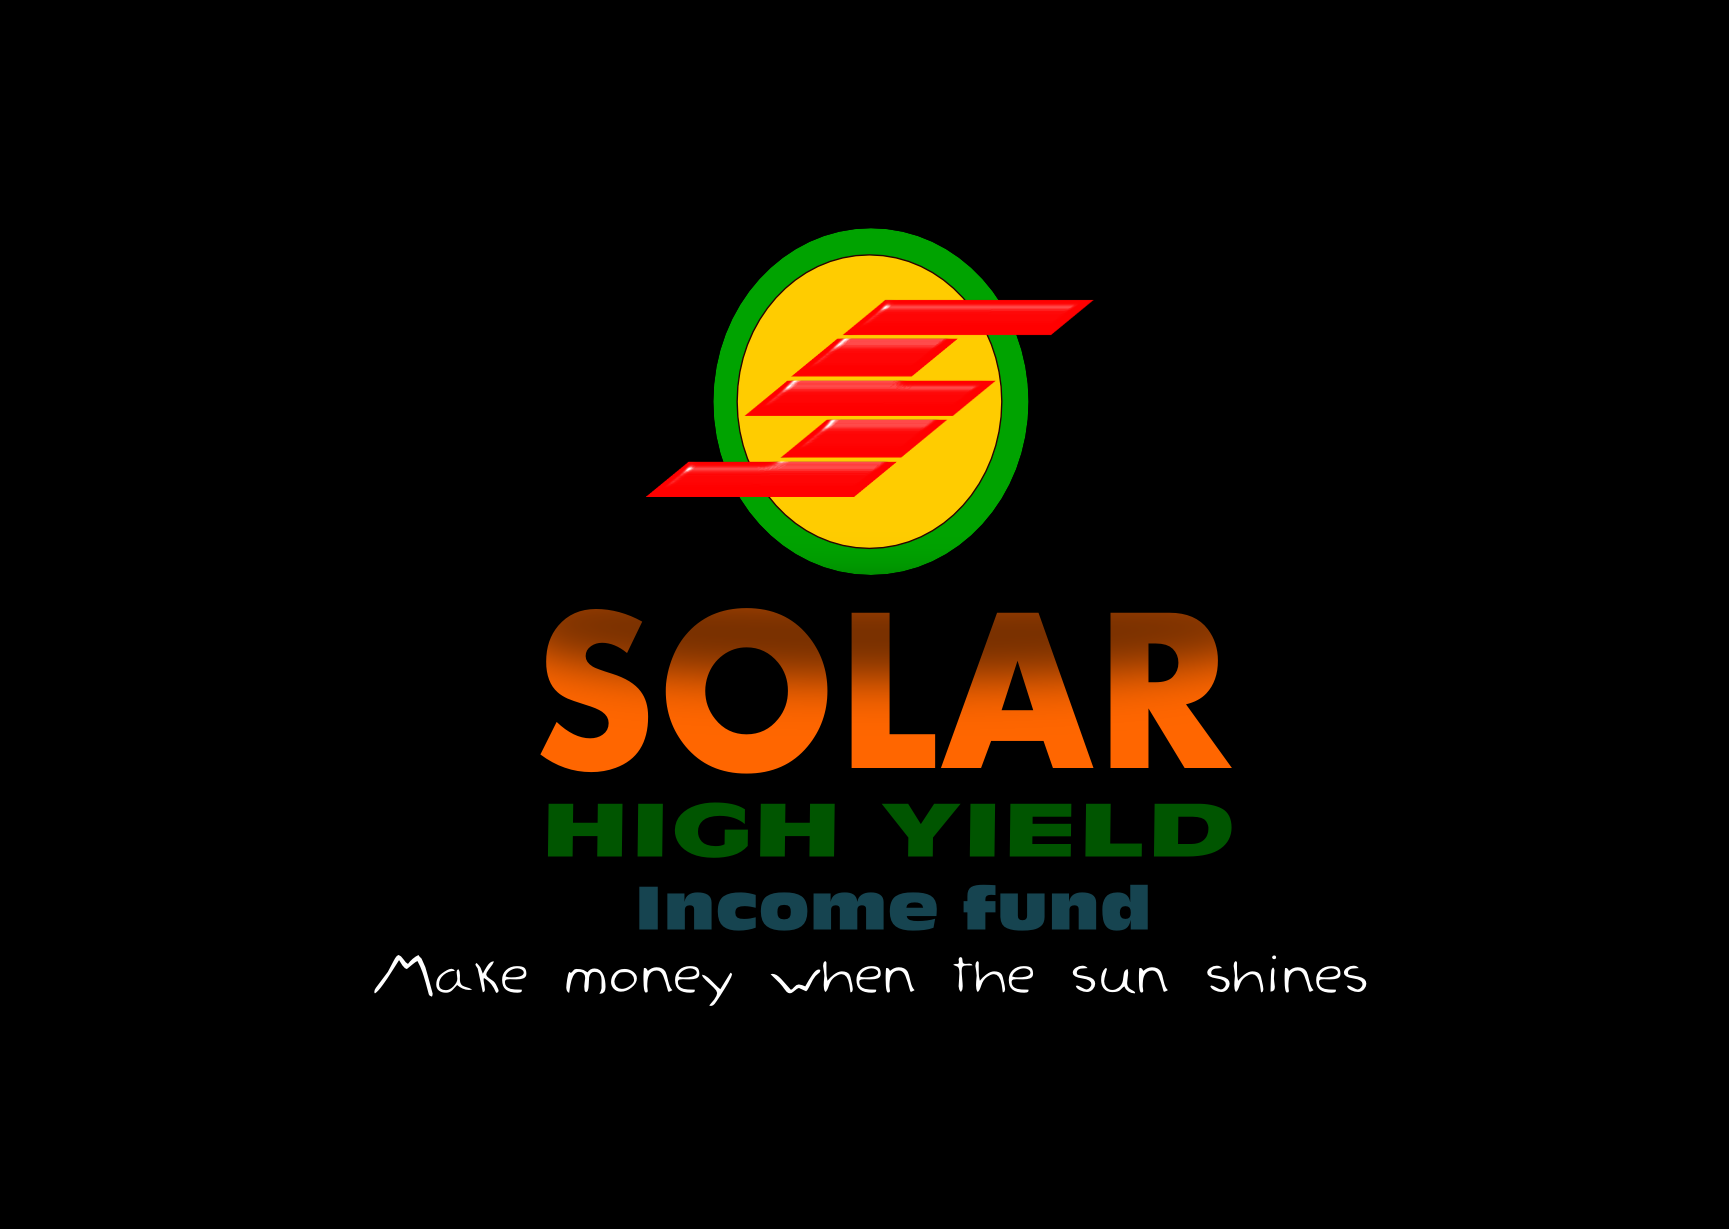 Logo Design by Joseph calunsag Cagaanan - Entry No. 112 in the Logo Design Contest Logo Design Needed for Exciting New Company Solar High Yield Income Fund.